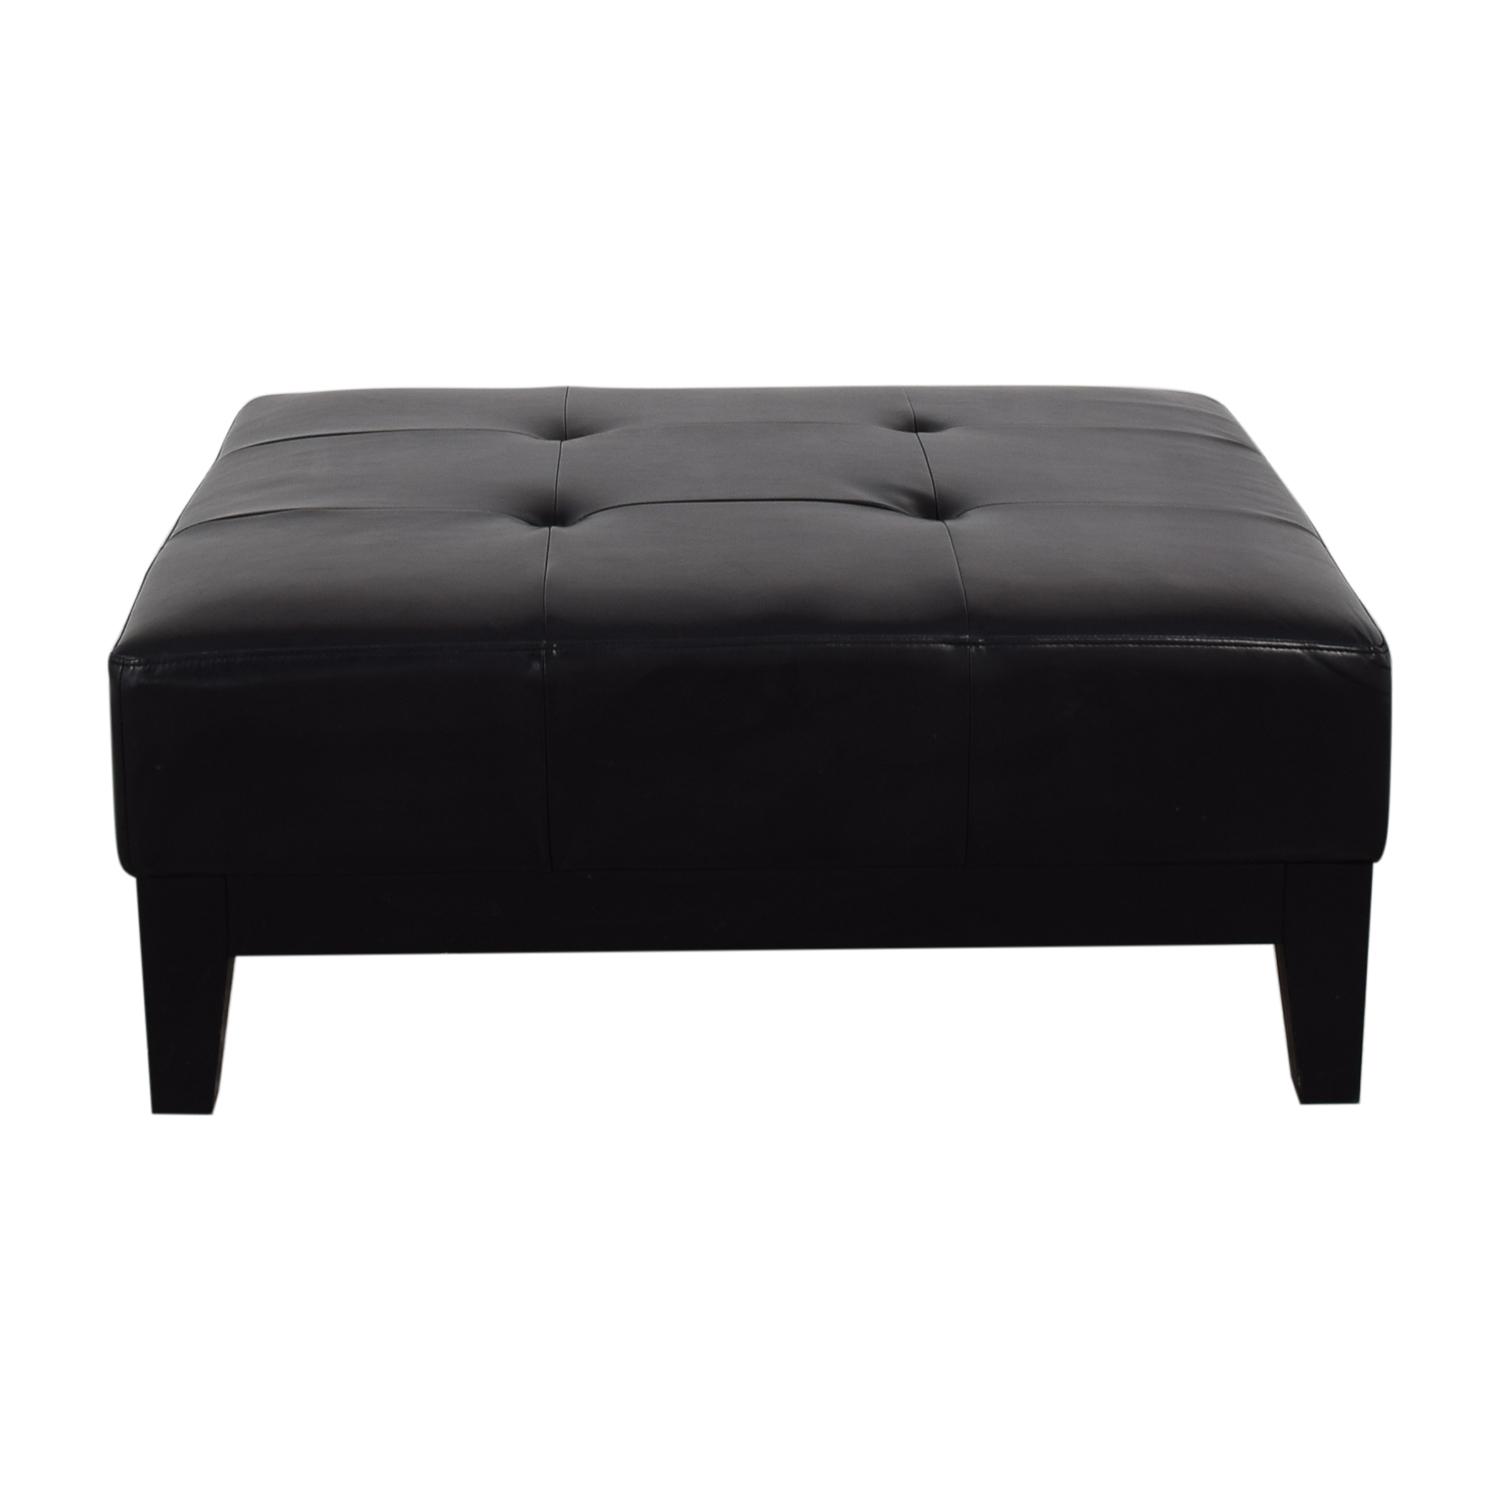 Baxton Studio Baxton Studio Grant Brown Leather Large Cocktail Ottoman with Tufting and Wood Feet price